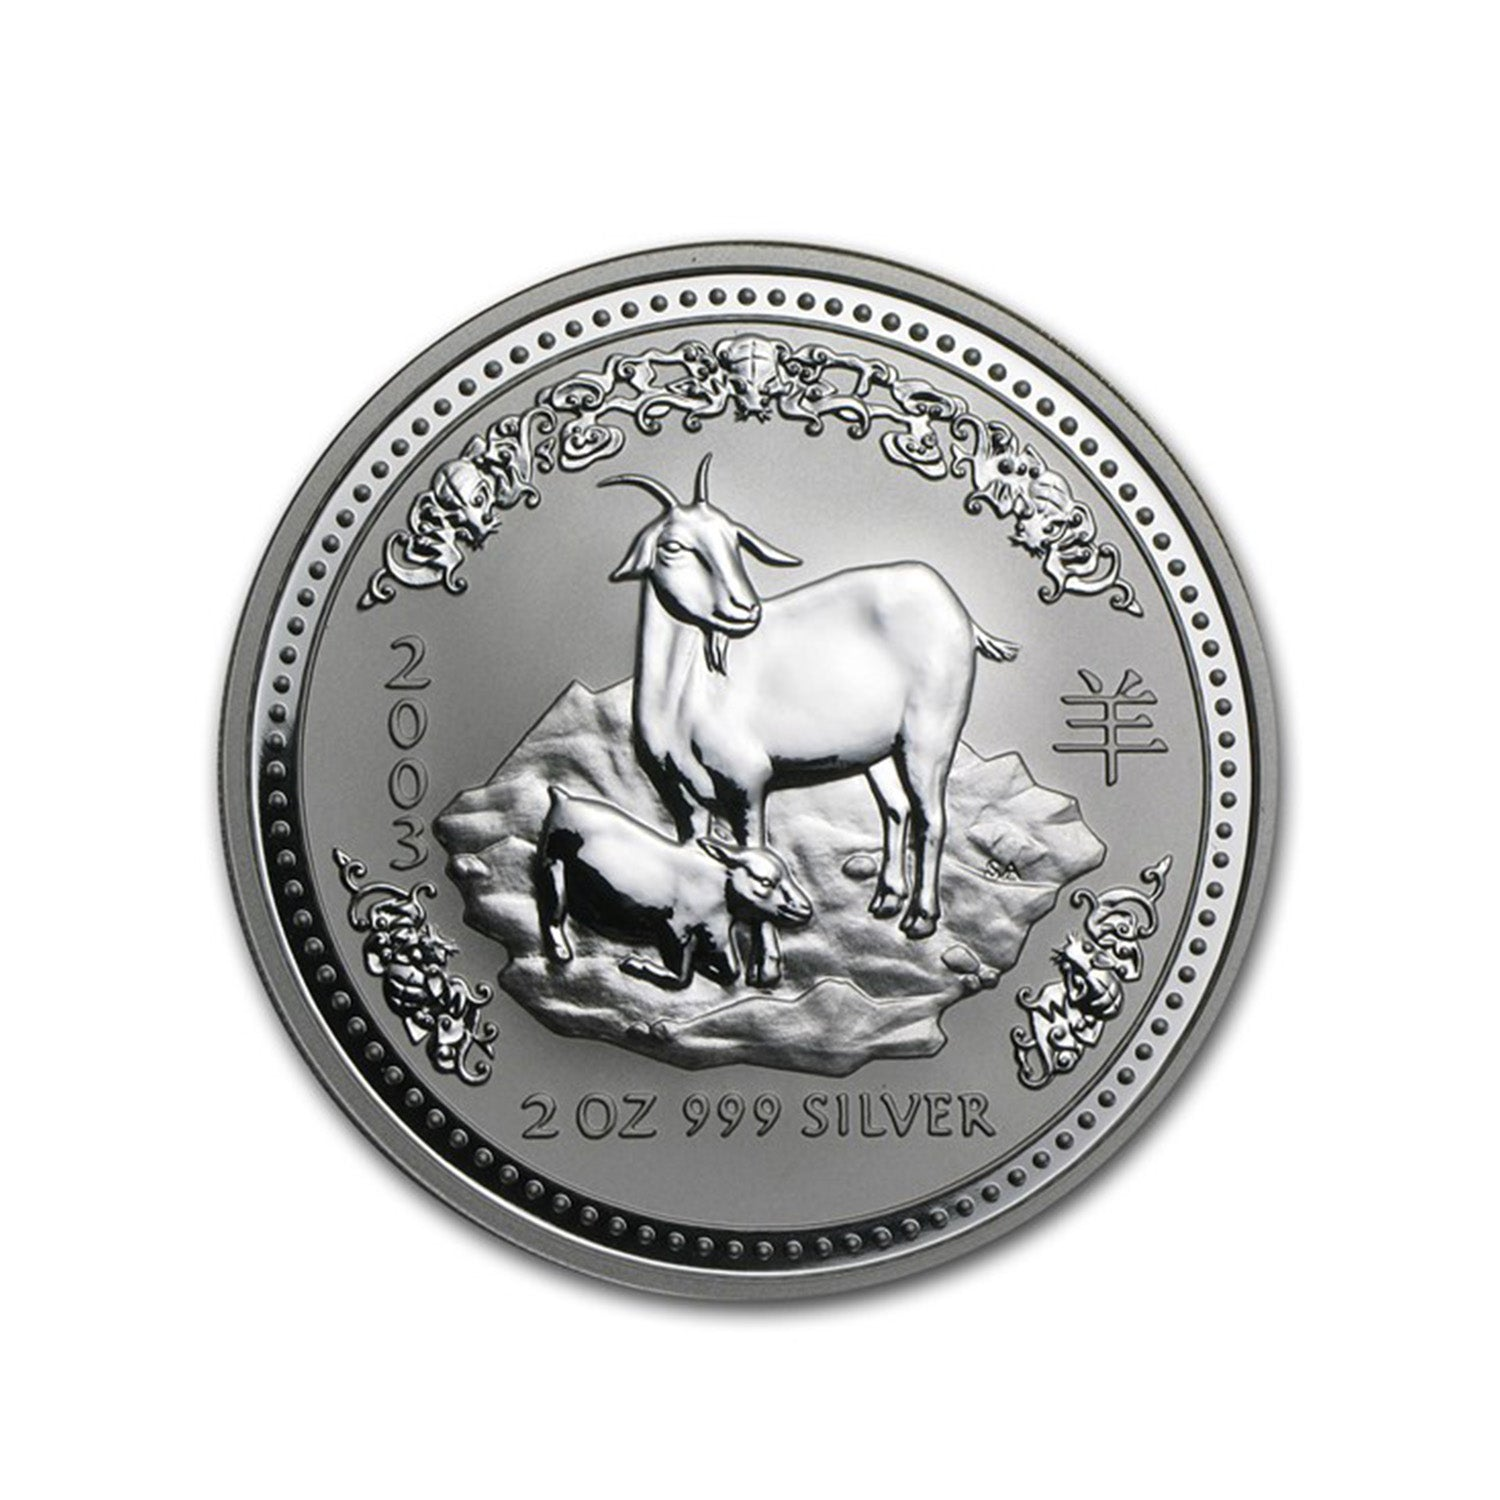 2003 $2 Australia Perth Mint 2 oz Silver Year of the Goat Coin